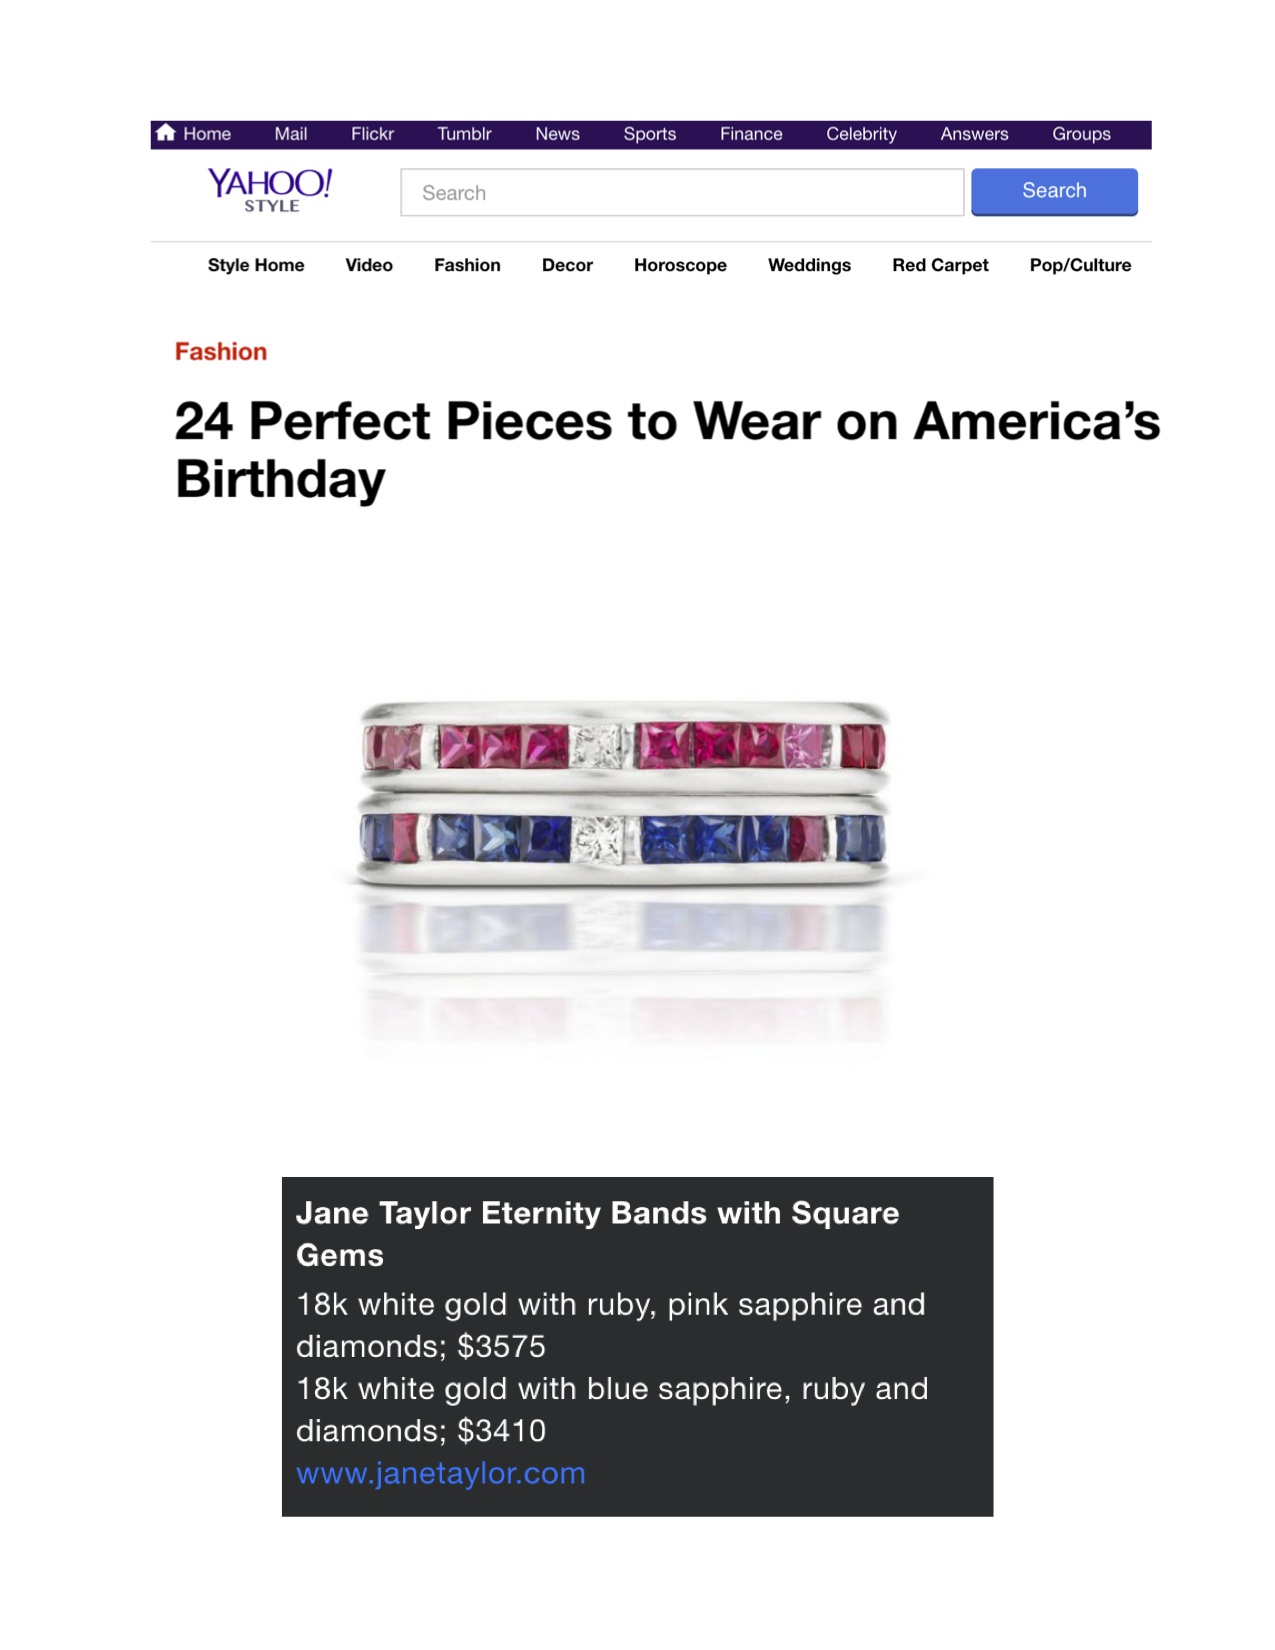 Yahoo!Style - 24 Perfect Pieces to Wear on America's Birthday - Jane Taylor Jewelry